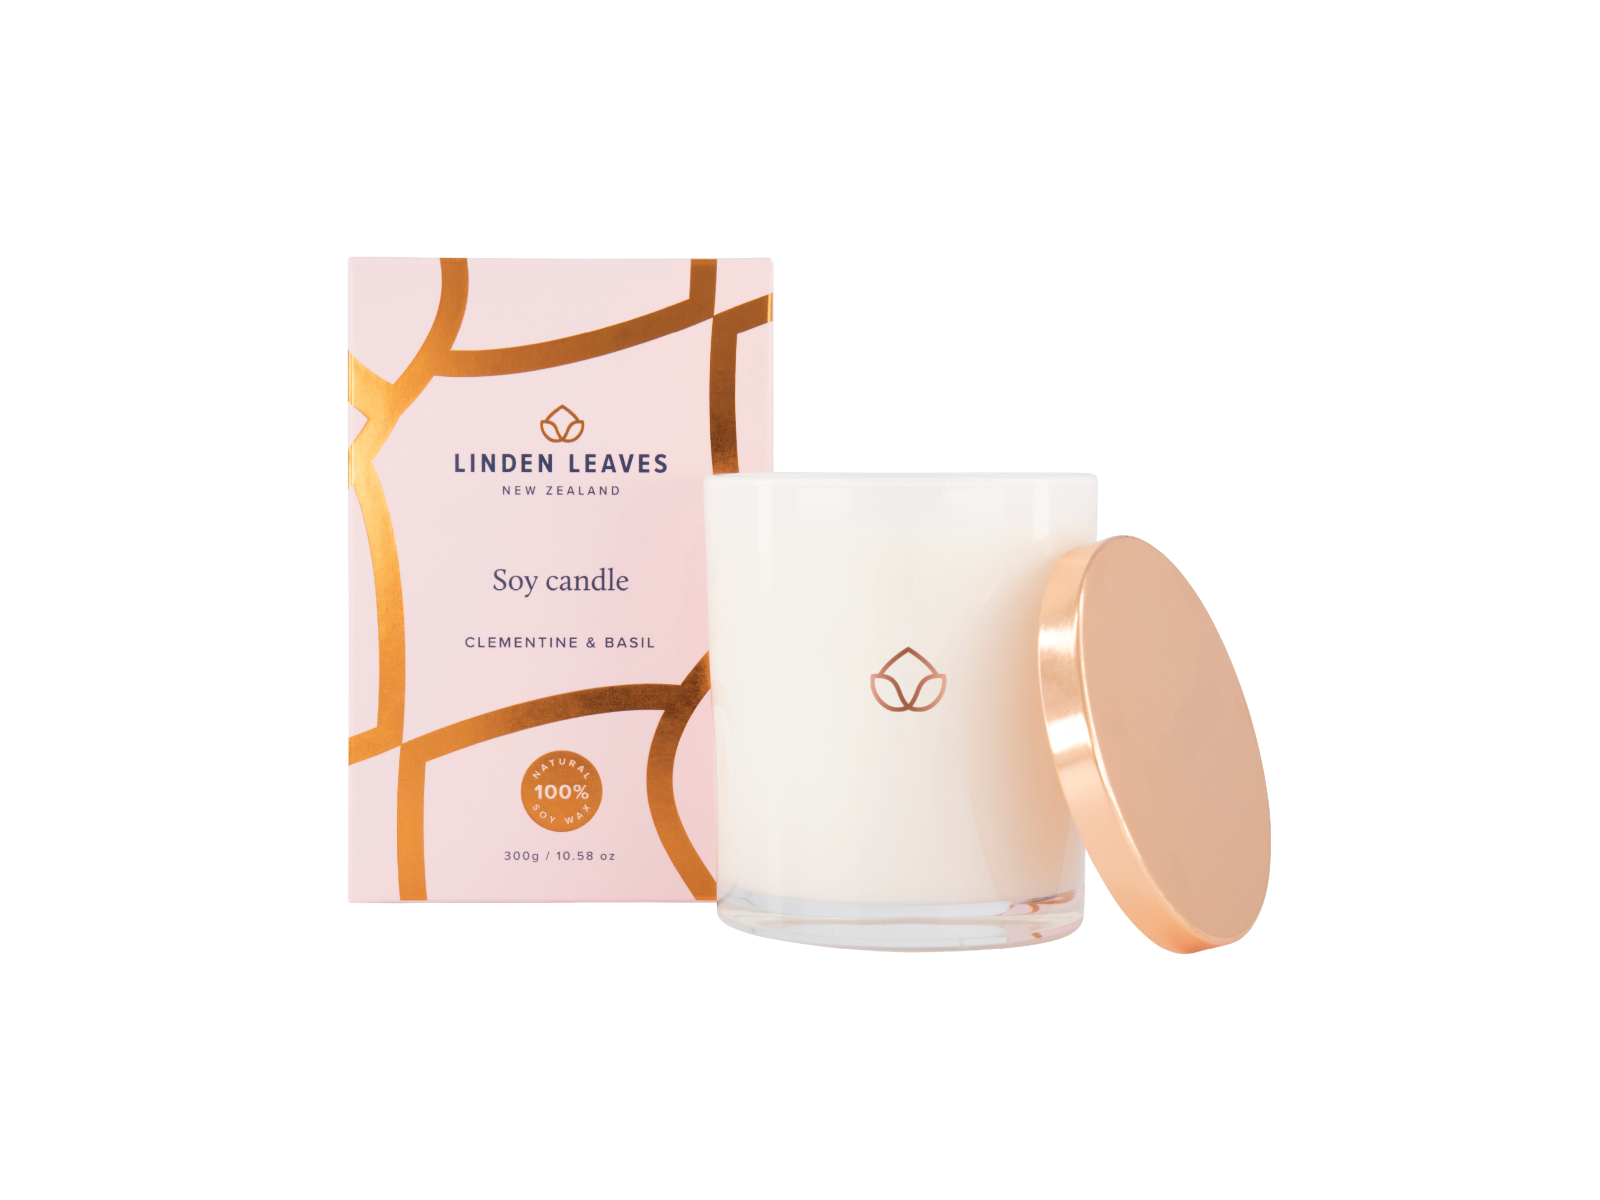 Clementine & Basil Candle